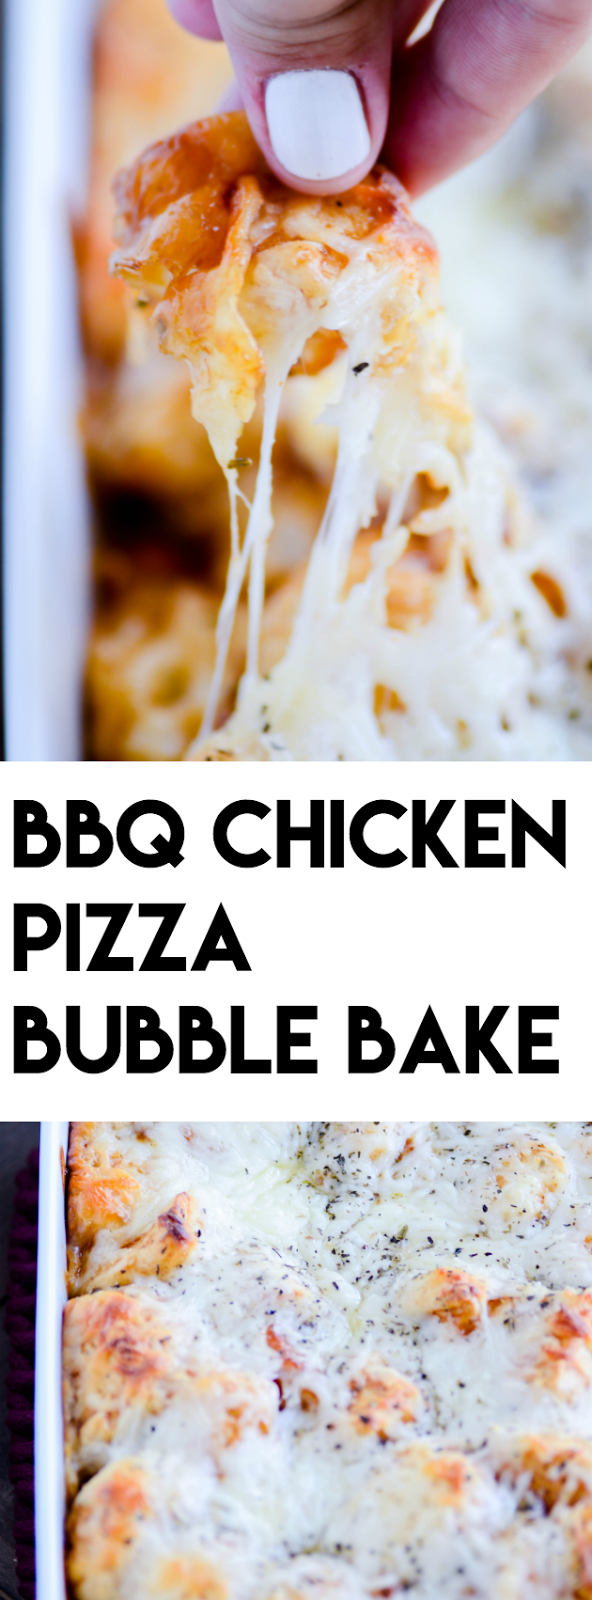 BBQ Chicken Bubble Bake is a quick and inexpensive weeknight dinner that the whole family will love!